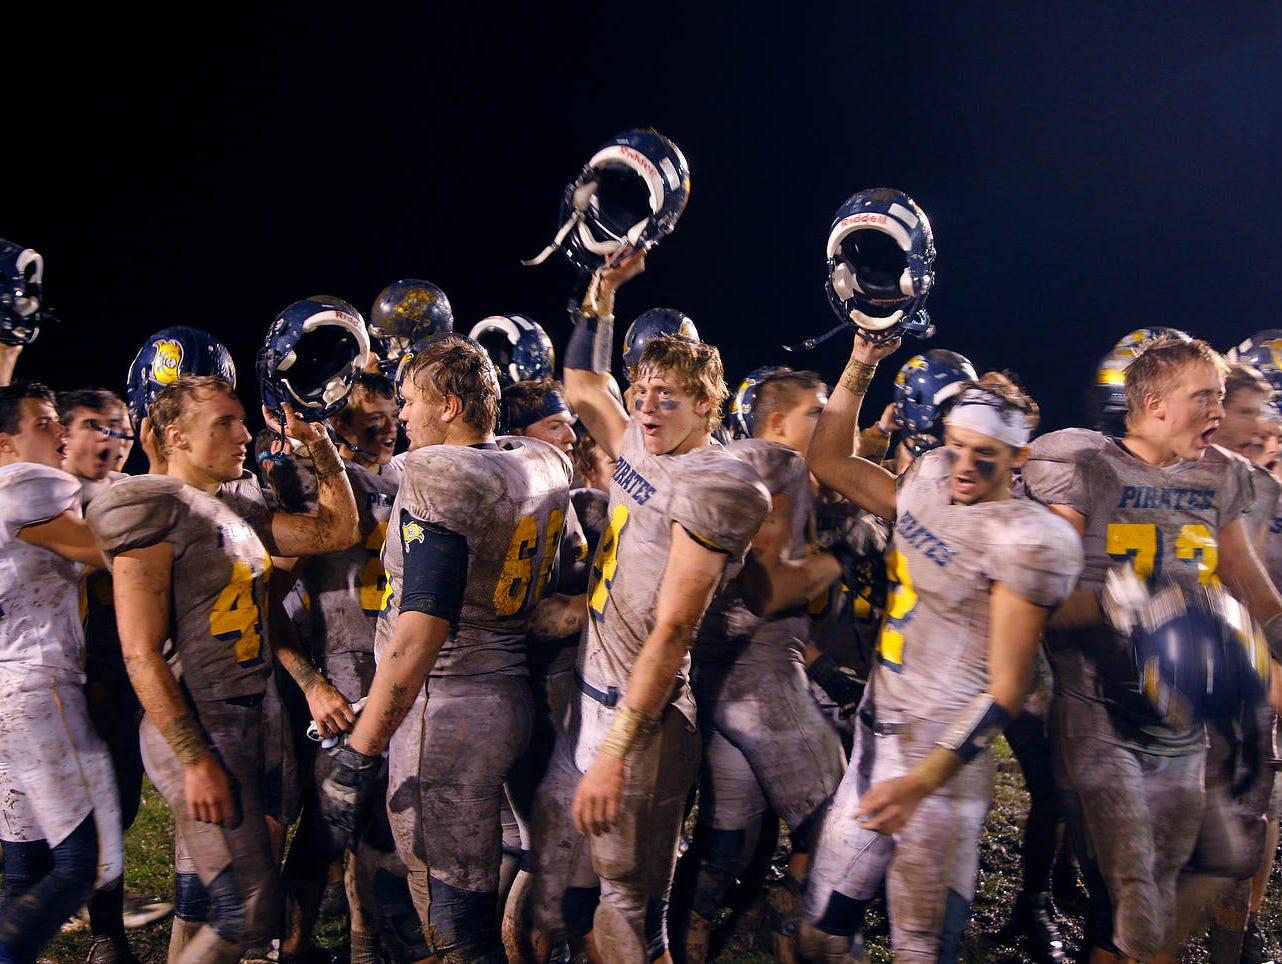 Pewamo-Westphalia players celebrate following a 40-7 win over Laingsburg Friday, Sept. 30, 2016, in Laingsburg, Mich.